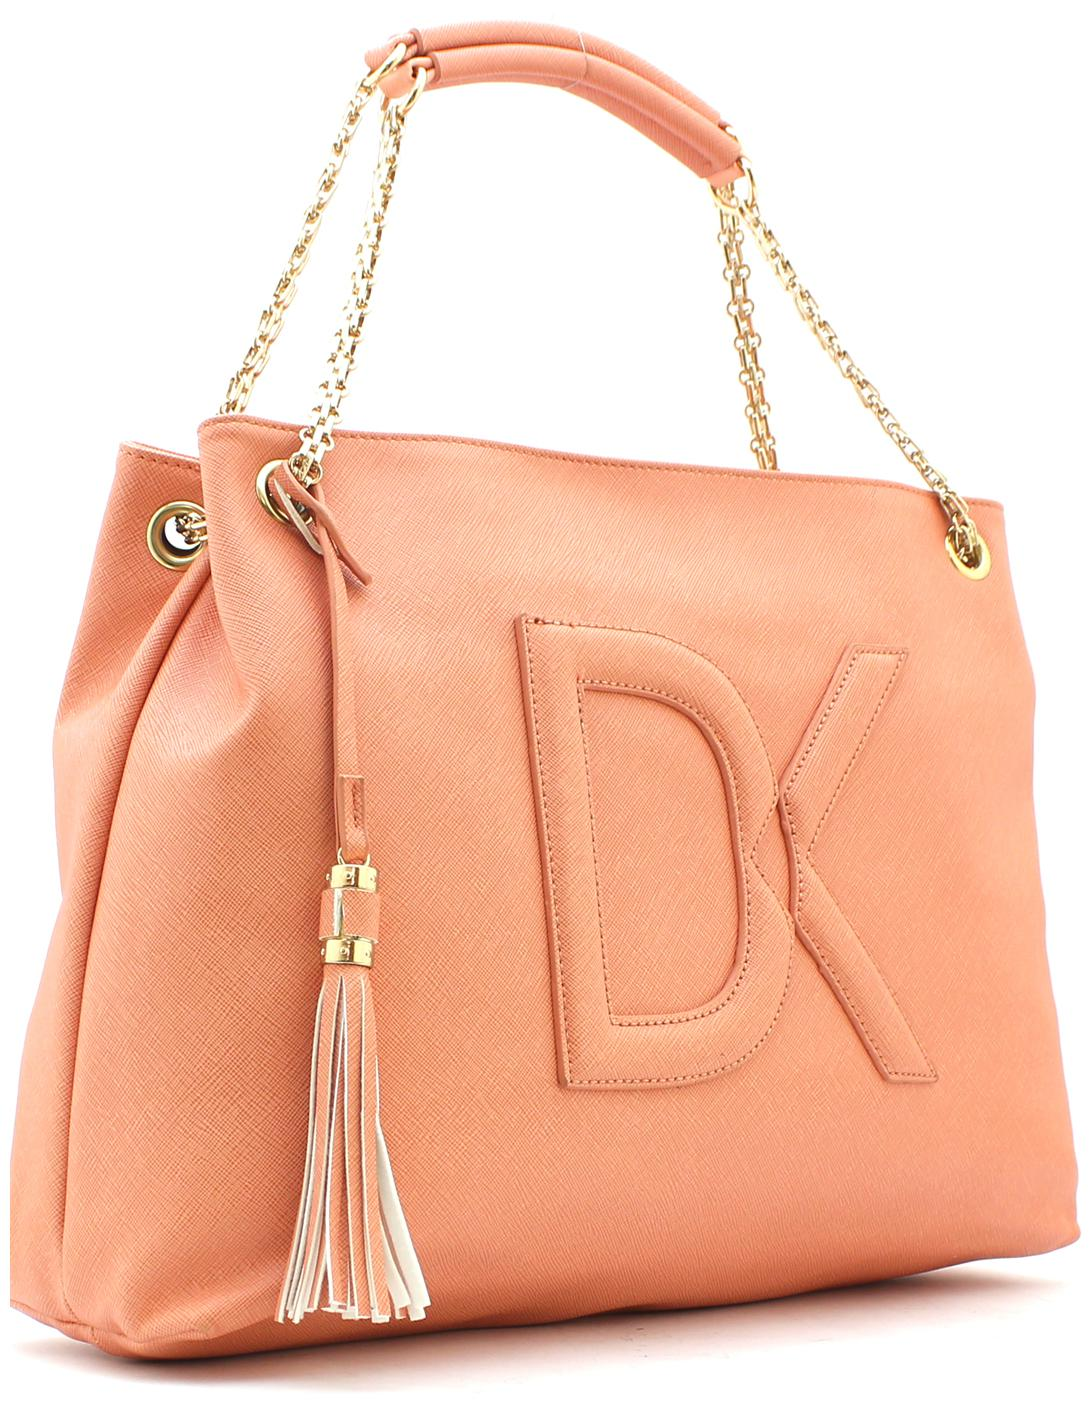 Diana Korr Orange PU Handheld Bag